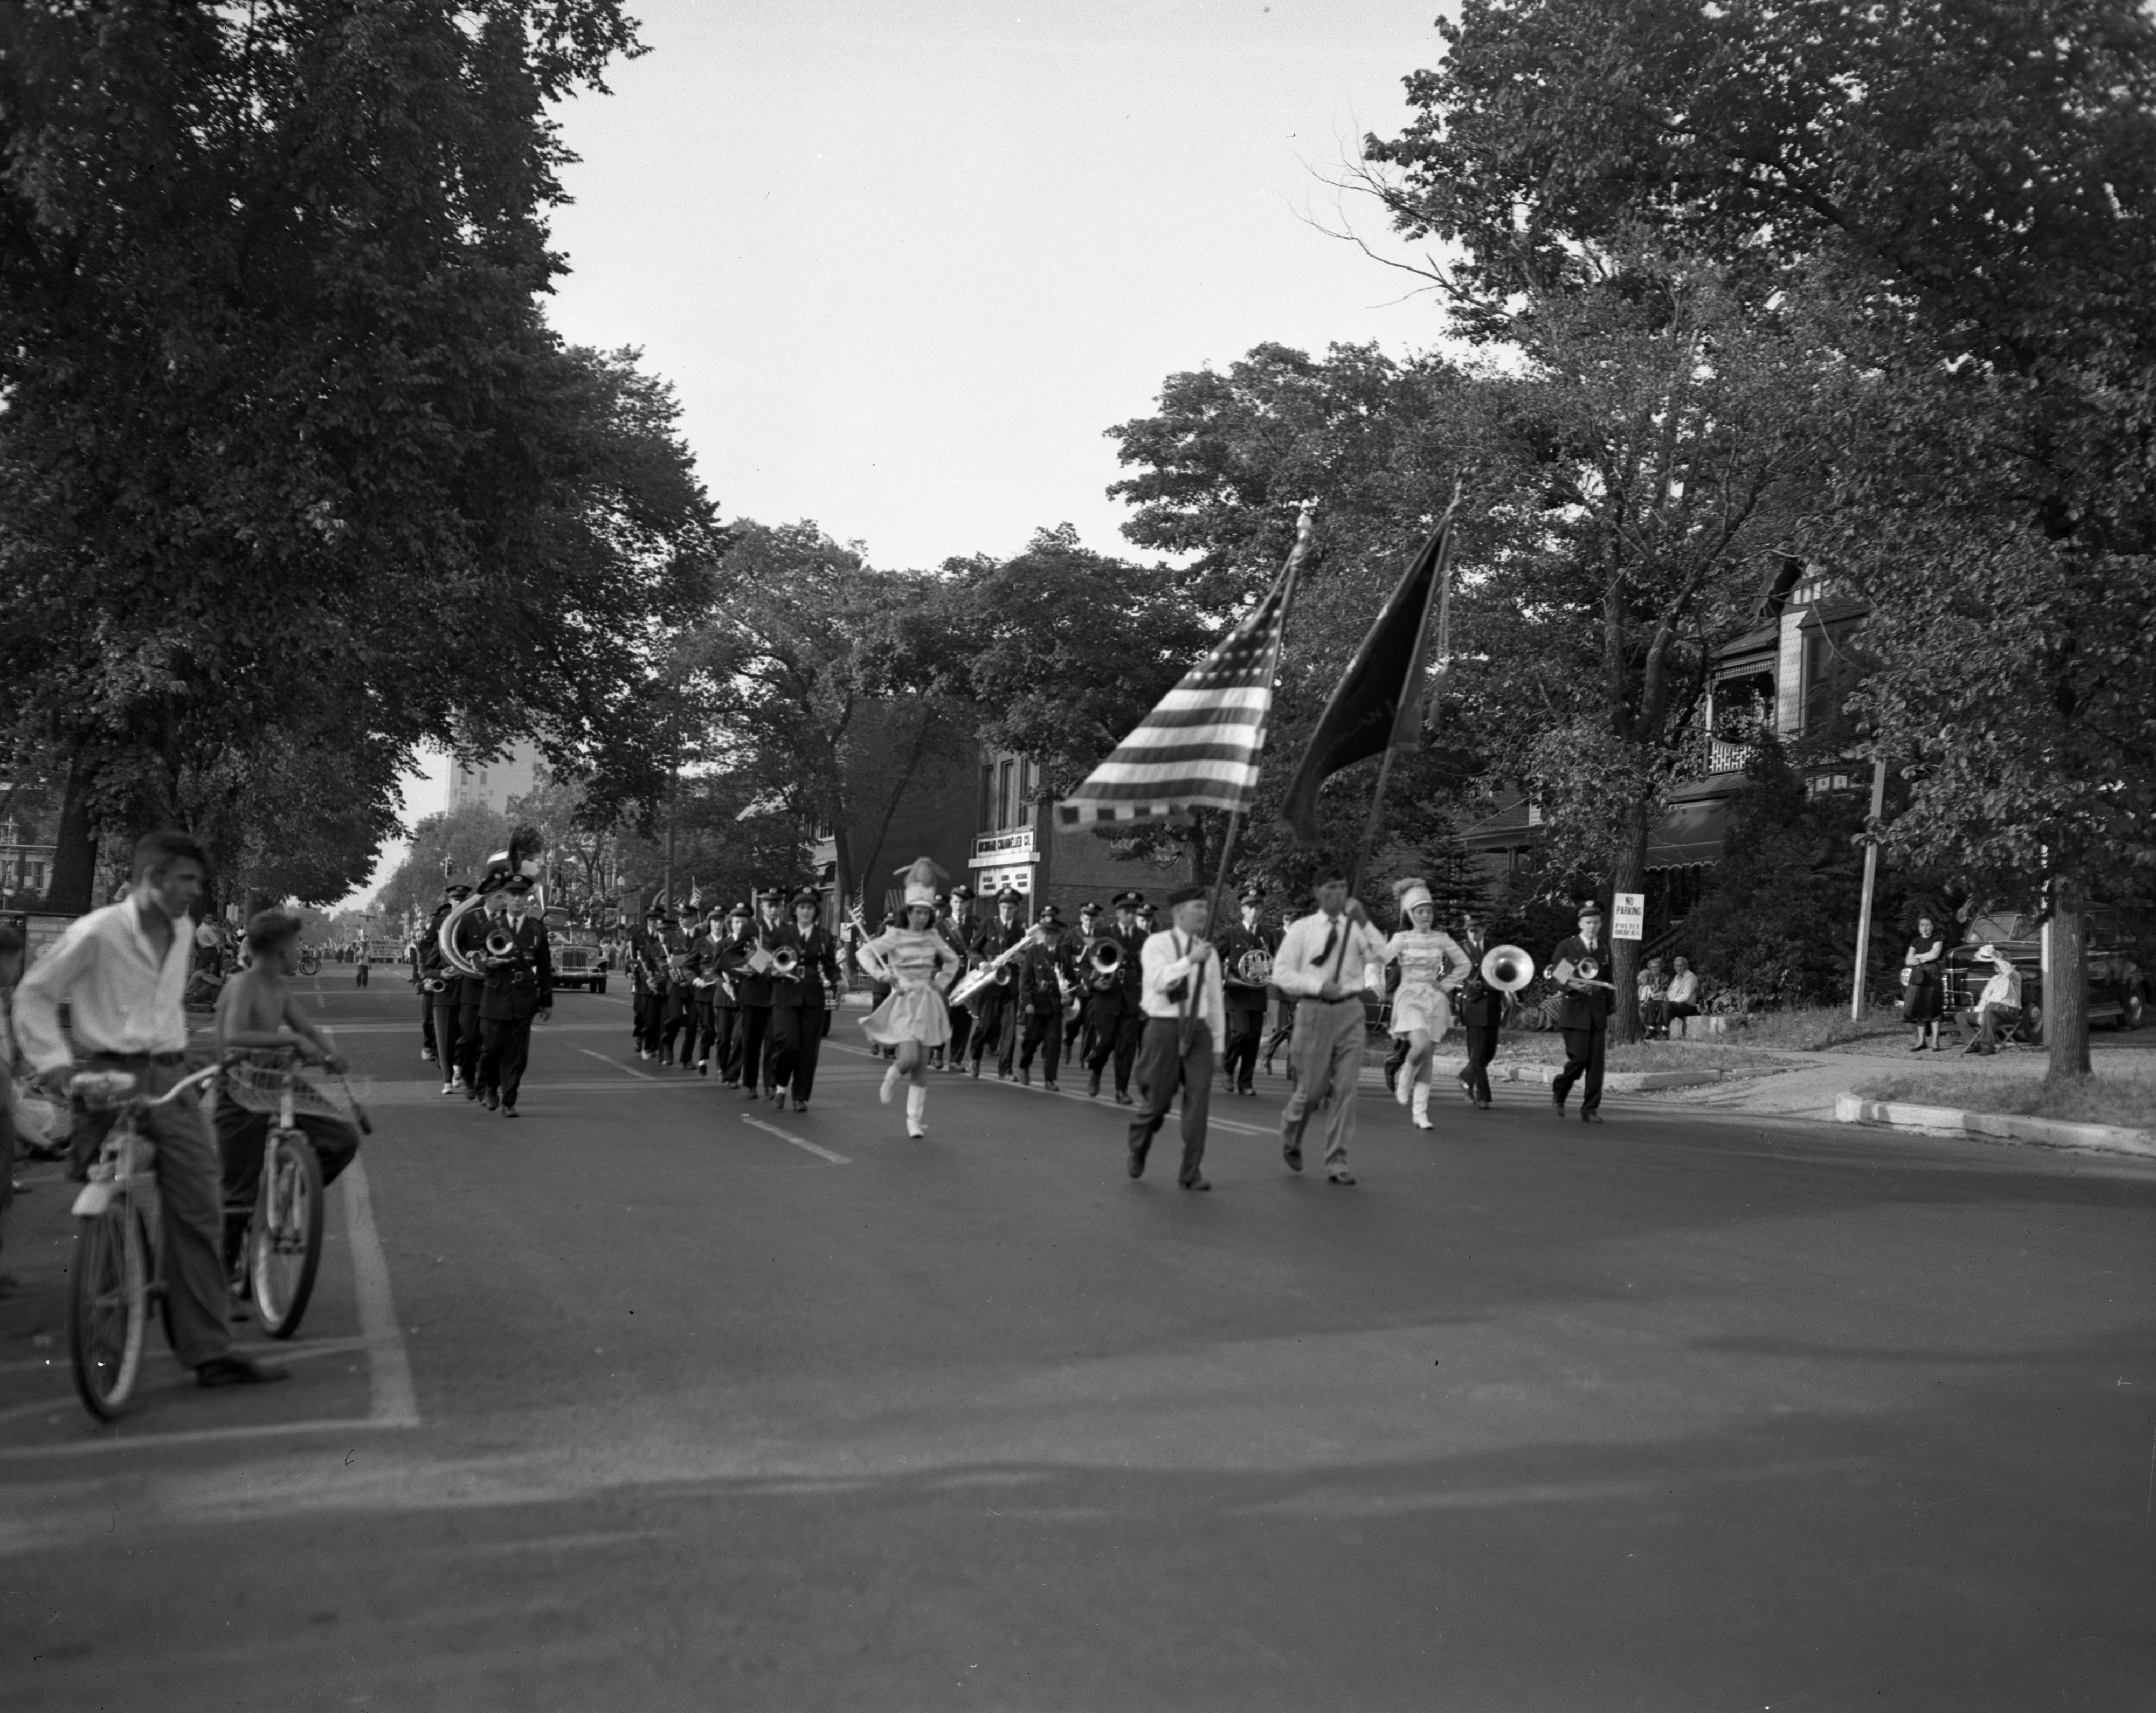 Milan High School Band A Big Part of the Civic Organization Day Freedom Train Parade, August 1948 image